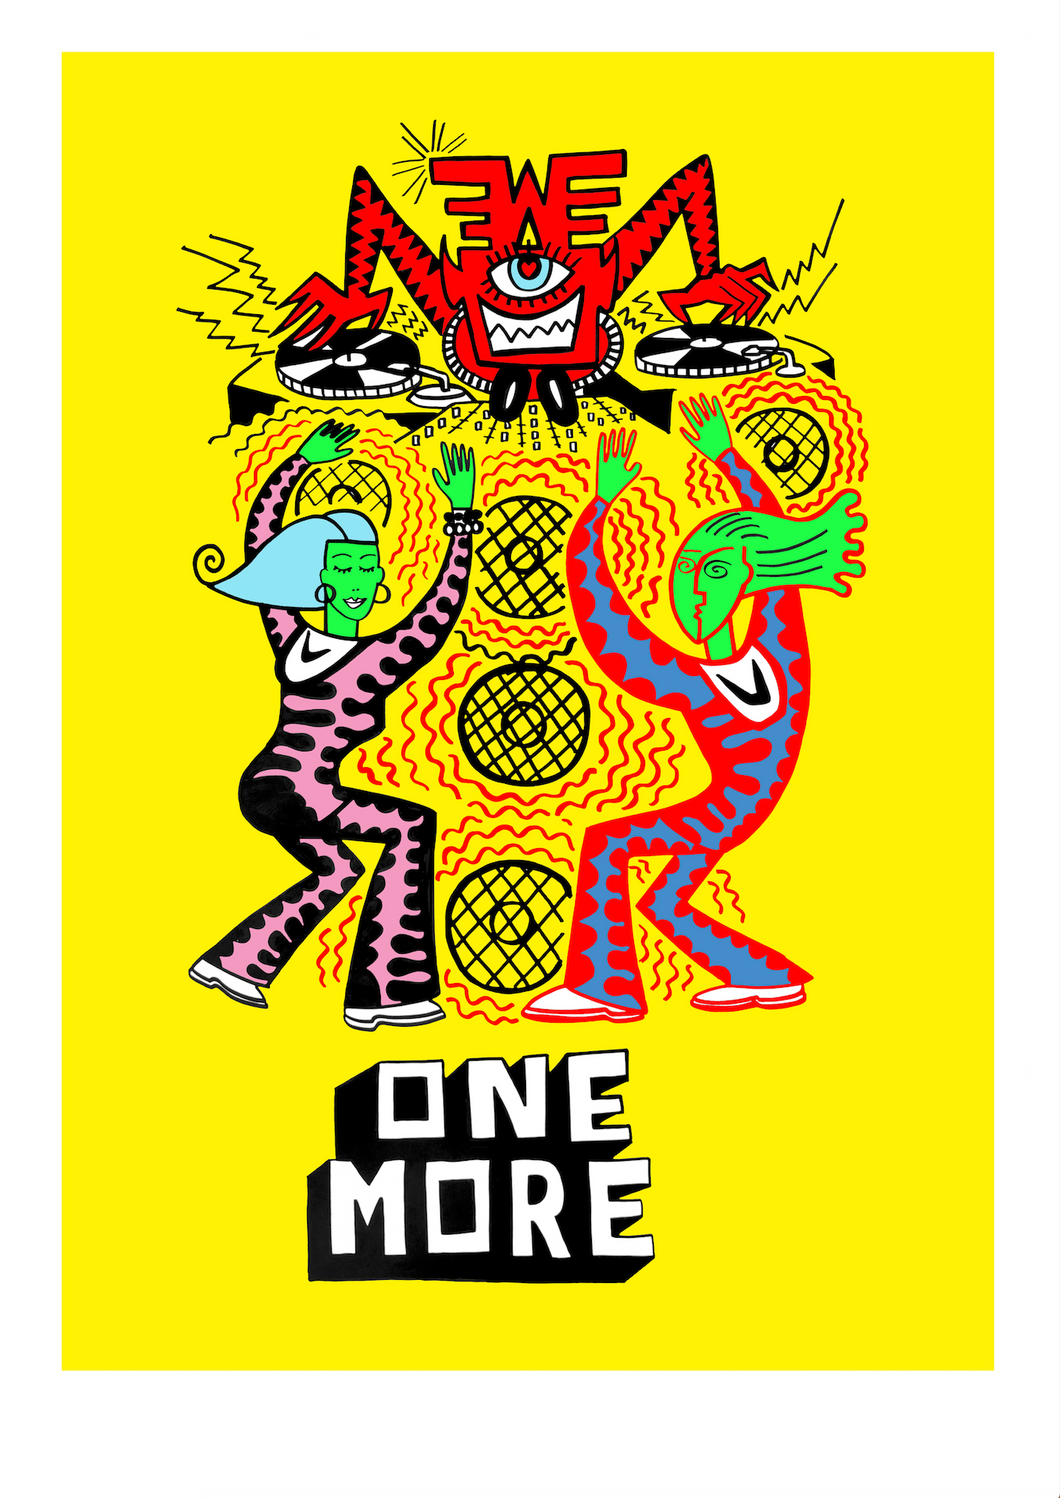 ONE MORE (2021) limited edition giclee art print